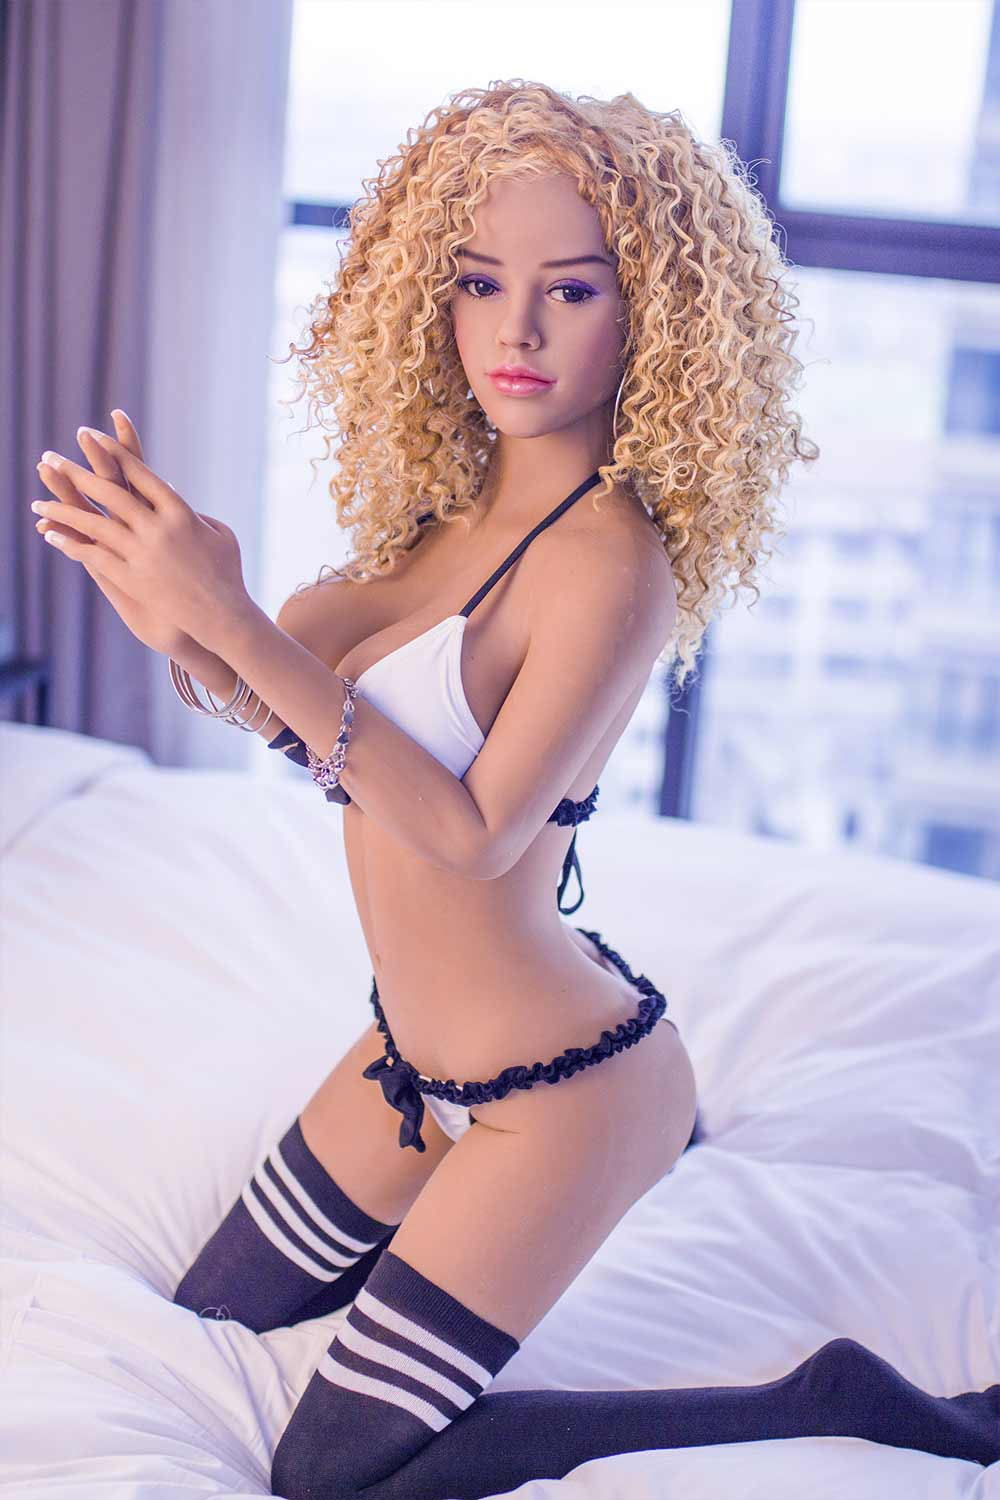 Sex doll with legs kneeling on the bed